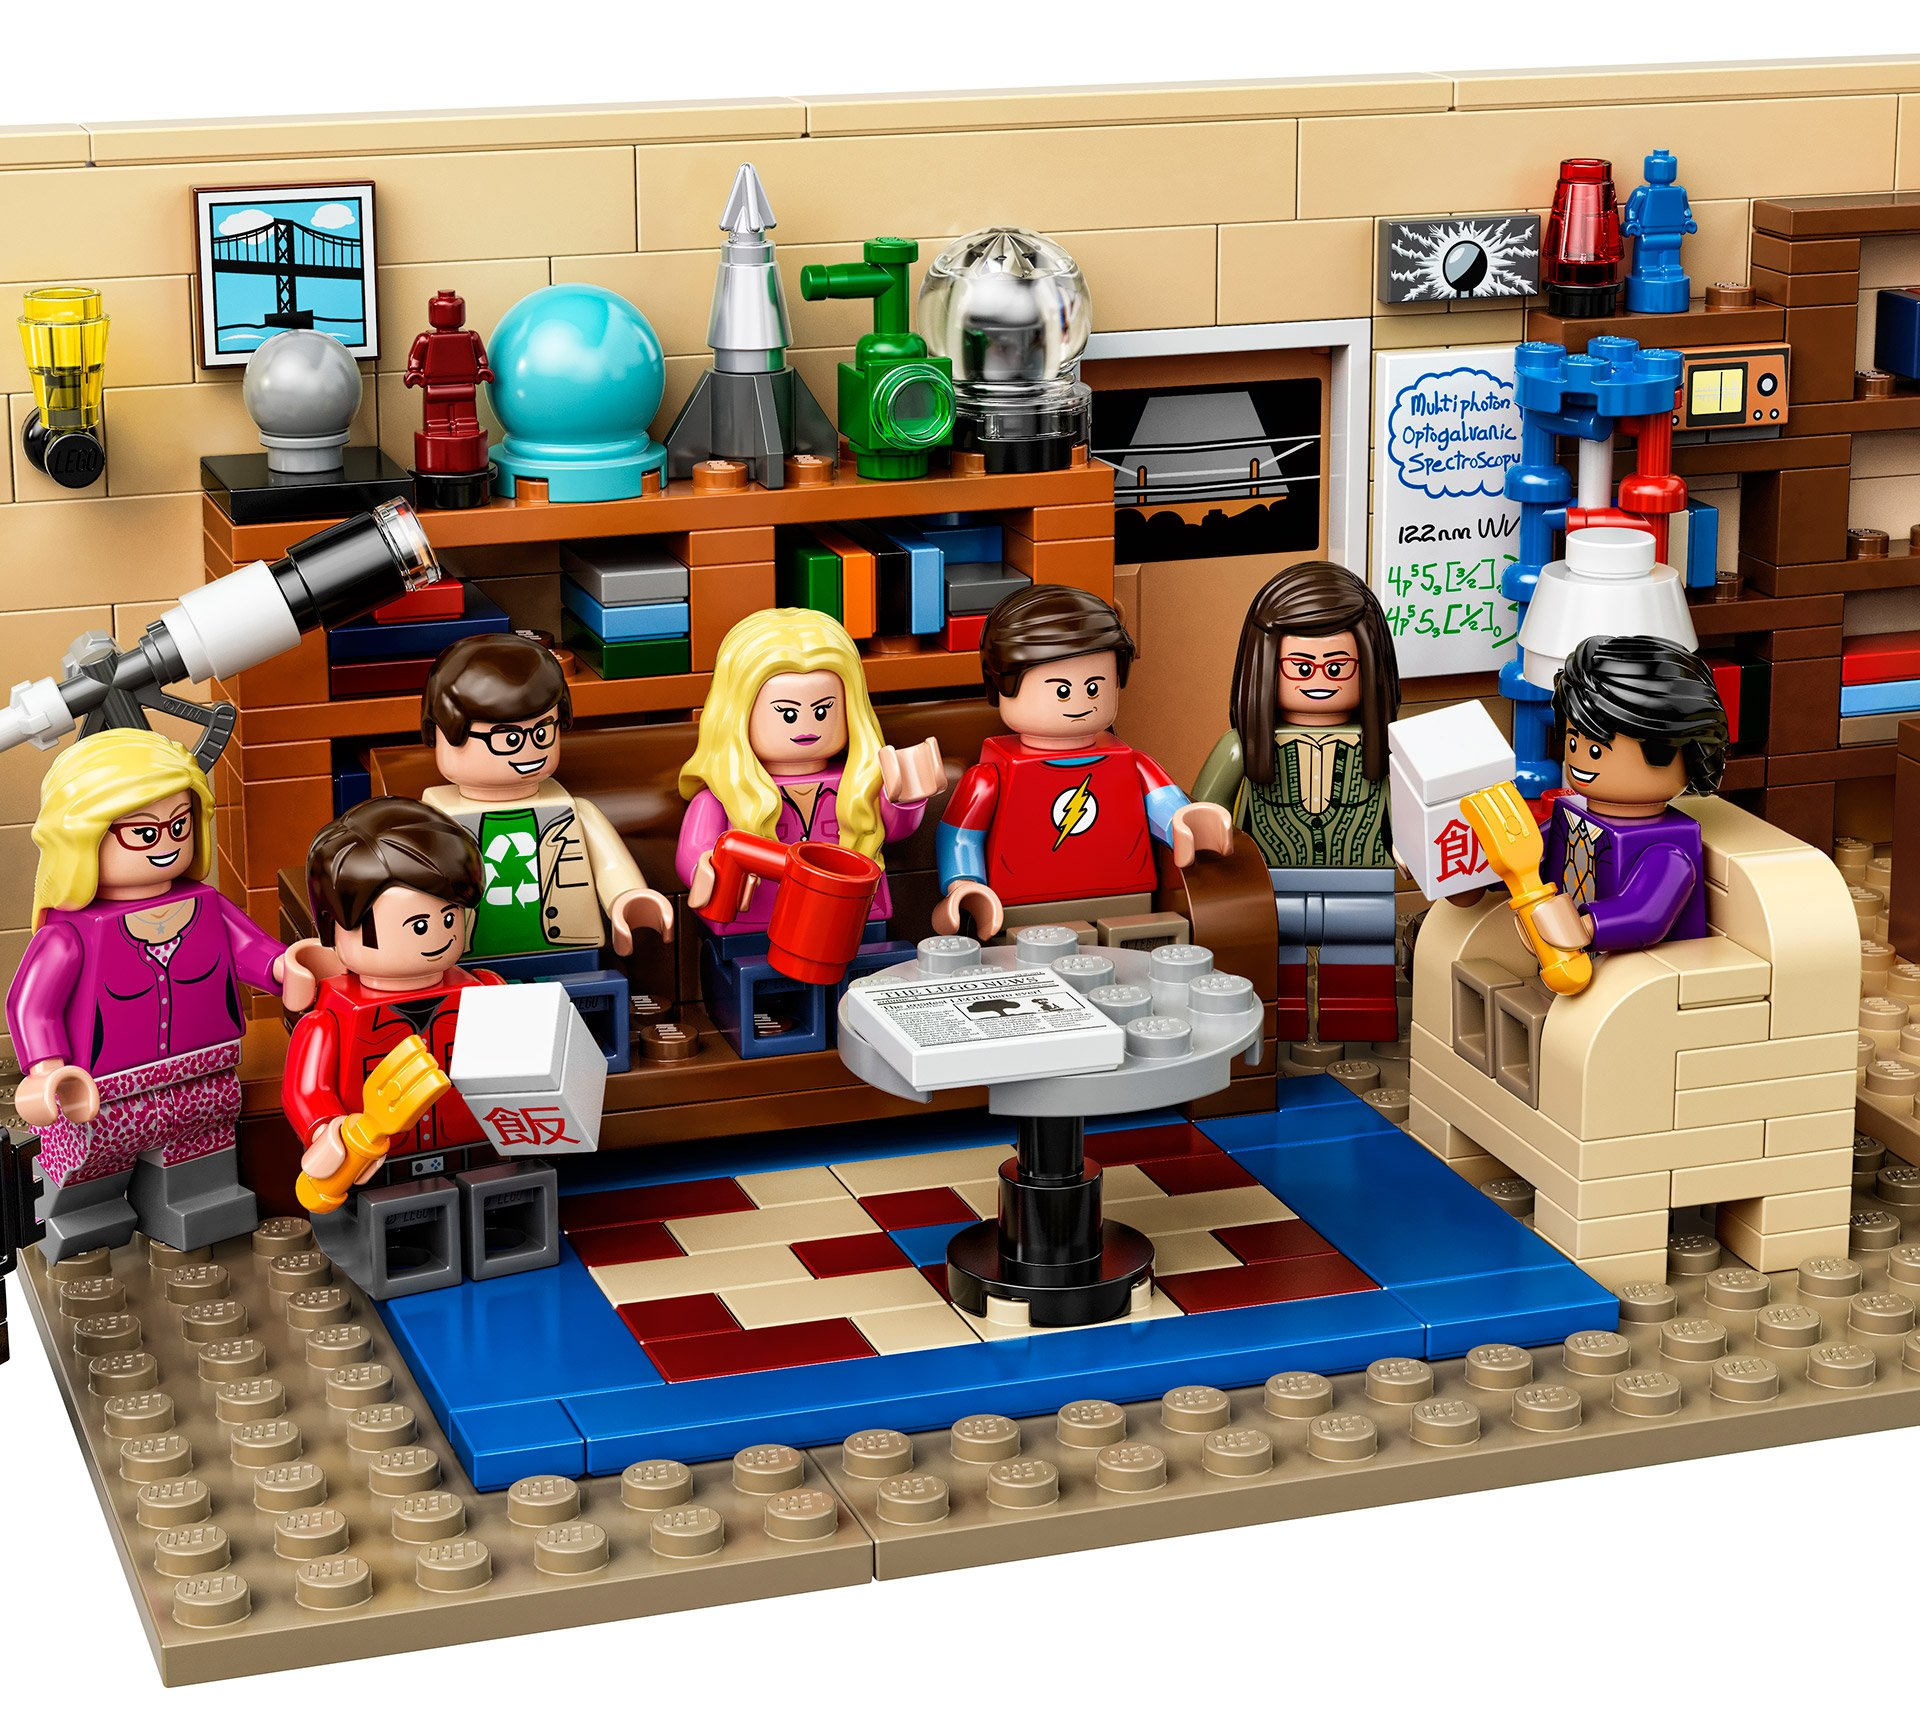 Lego X The Big Bang Theory The Awesomer